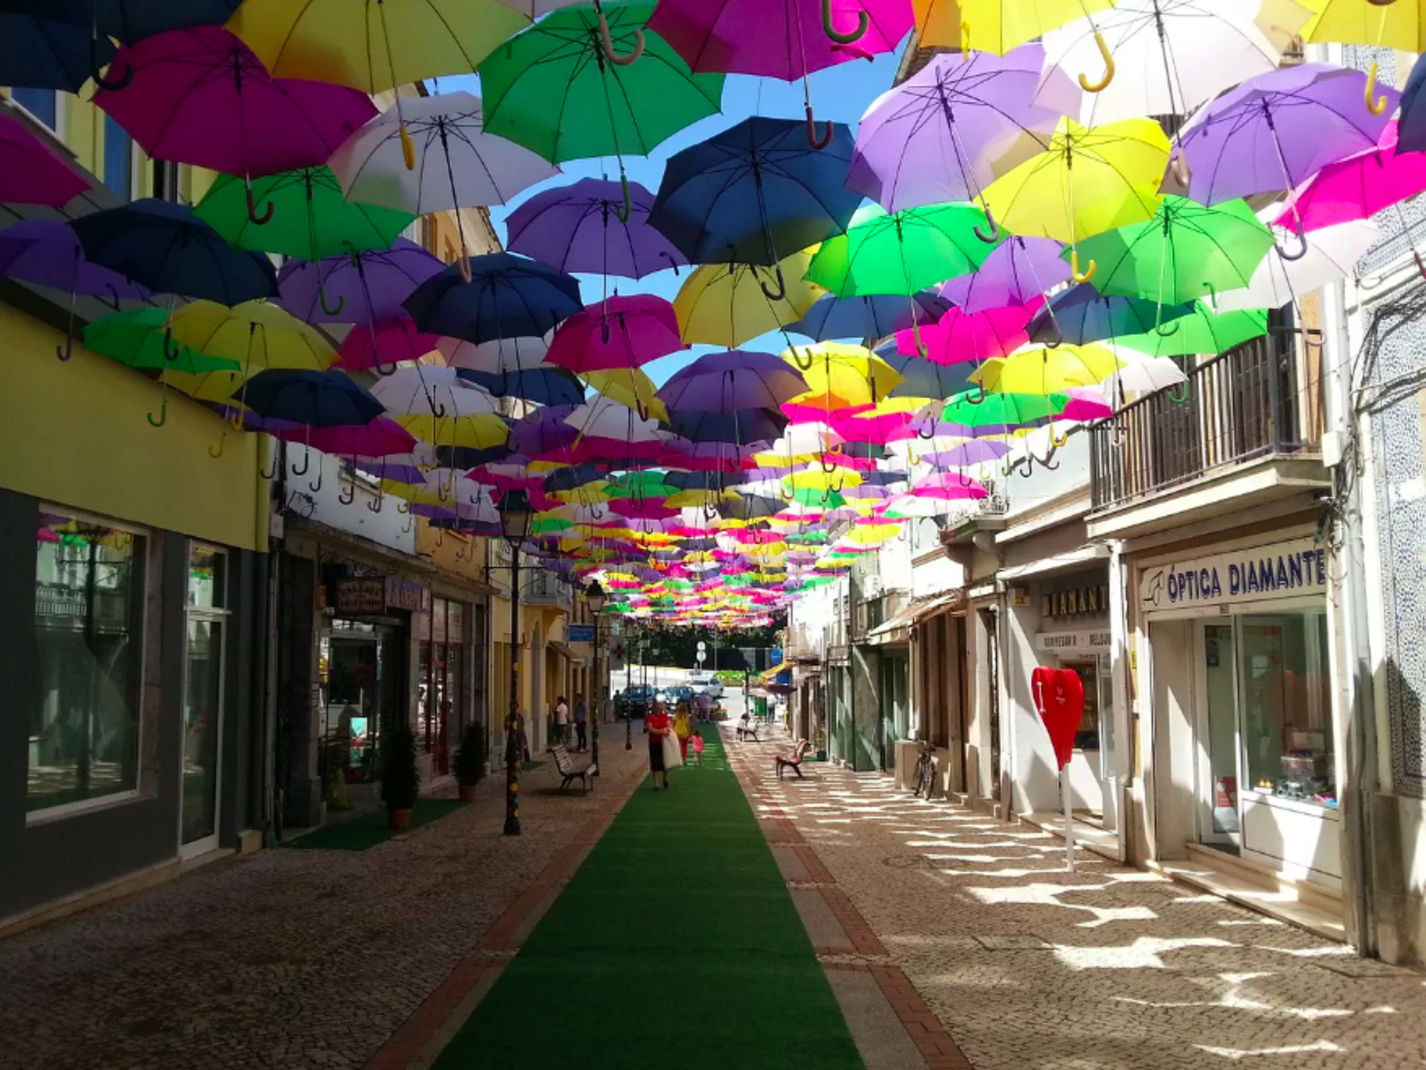 There are 3 Portuguese streets among the most beautiful in the world